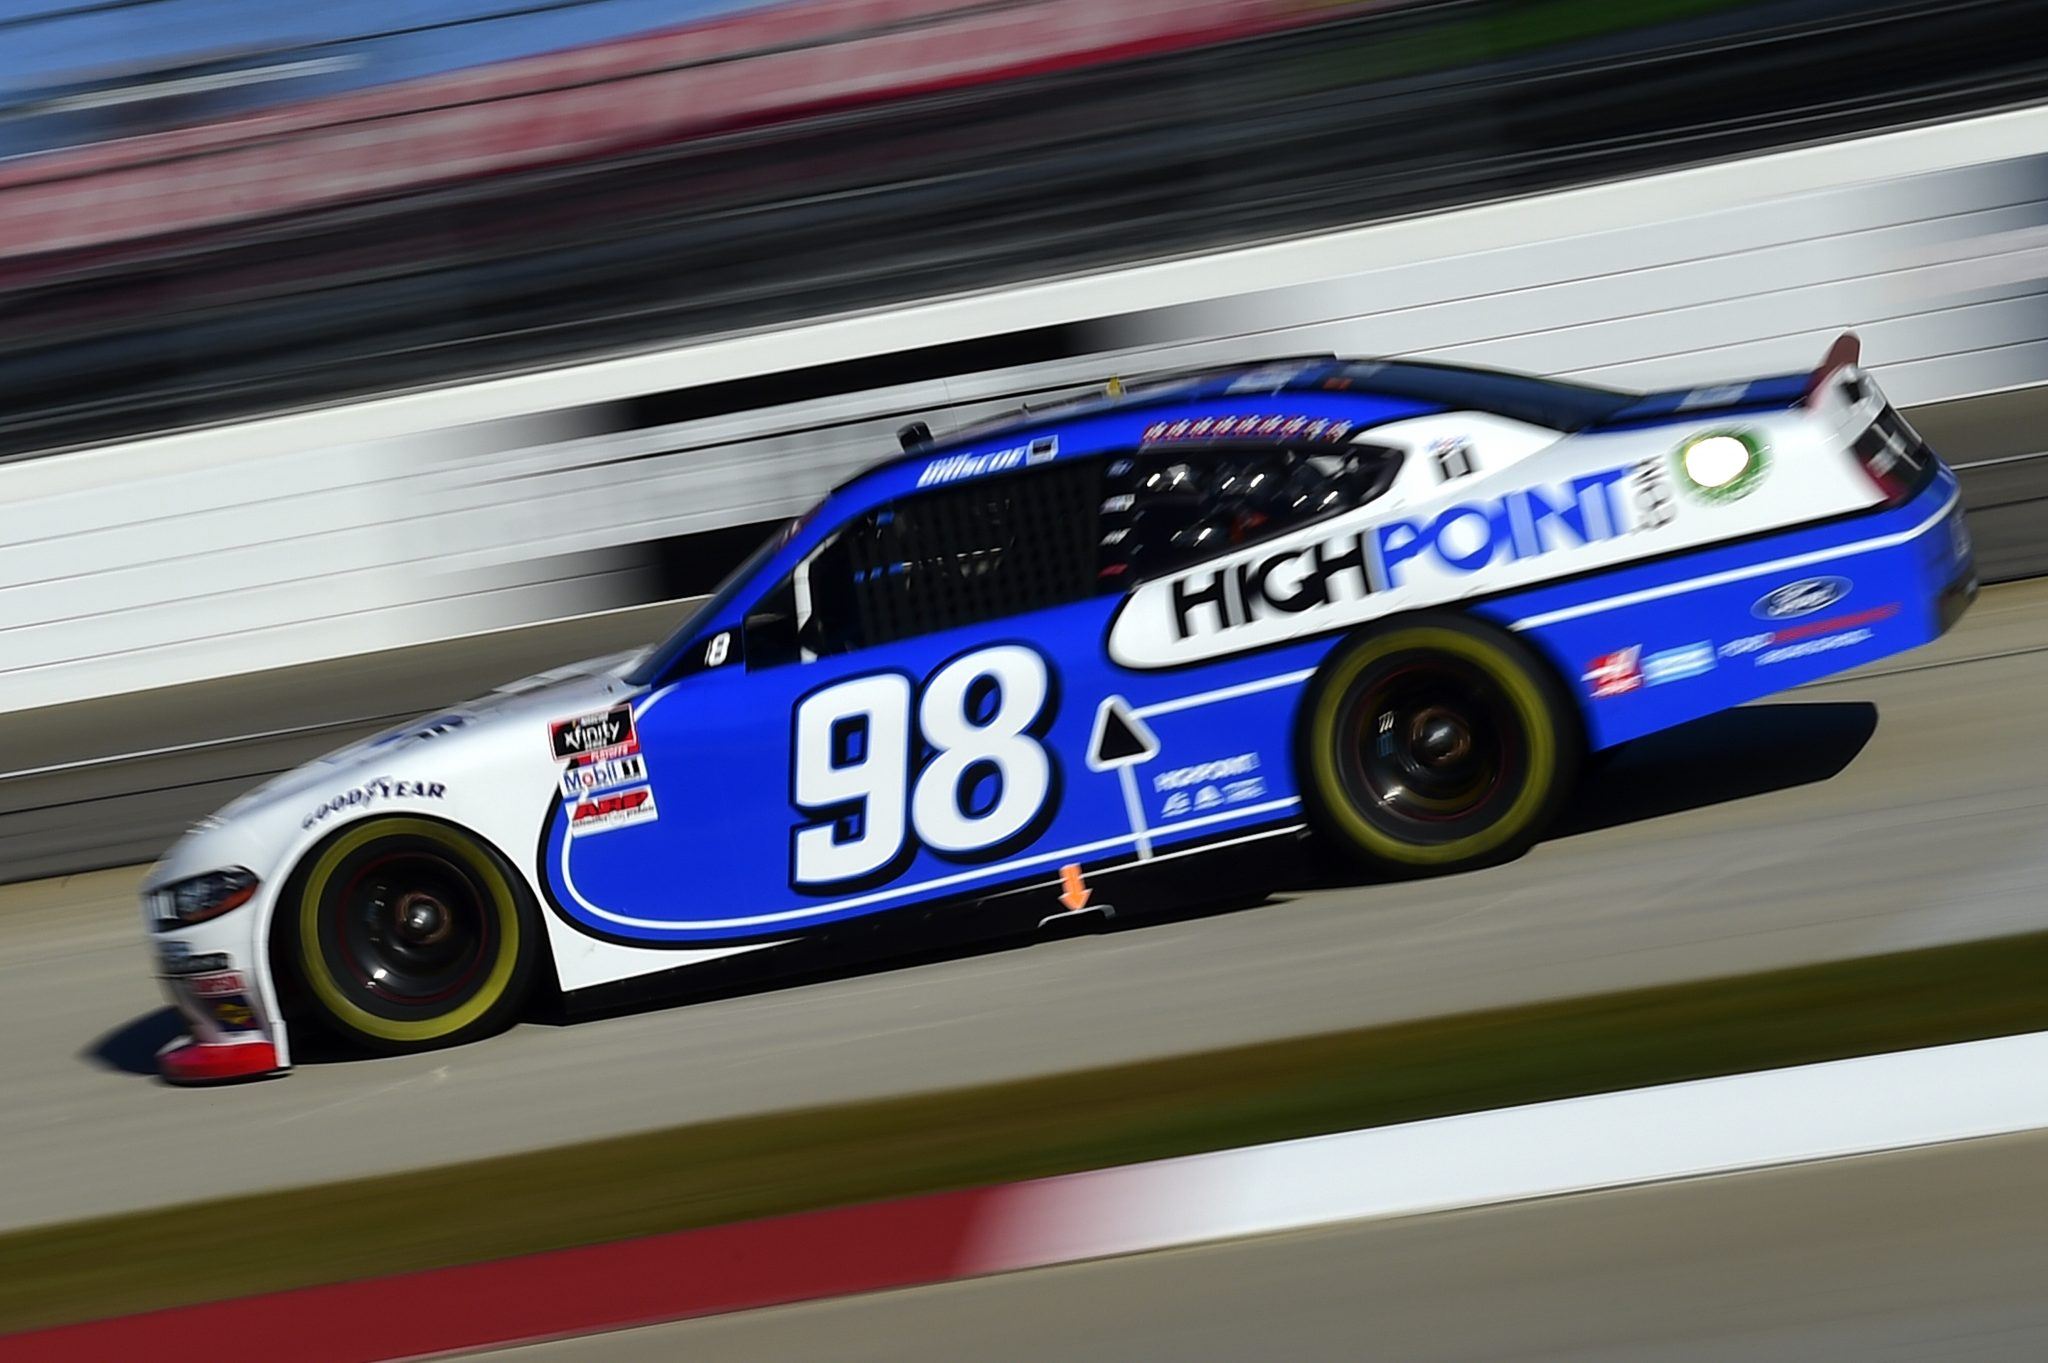 MARTINSVILLE, VIRGINIA - OCTOBER 31: Chase Briscoe, driver of the #98 HighPoint.com Ford, drives during the NASCAR Xfinity Series Draft Top 250 at Martinsville Speedway on October 31, 2020 in Martinsville, Virginia. (Photo by Jared C. Tilton/Getty Images) | Getty Images